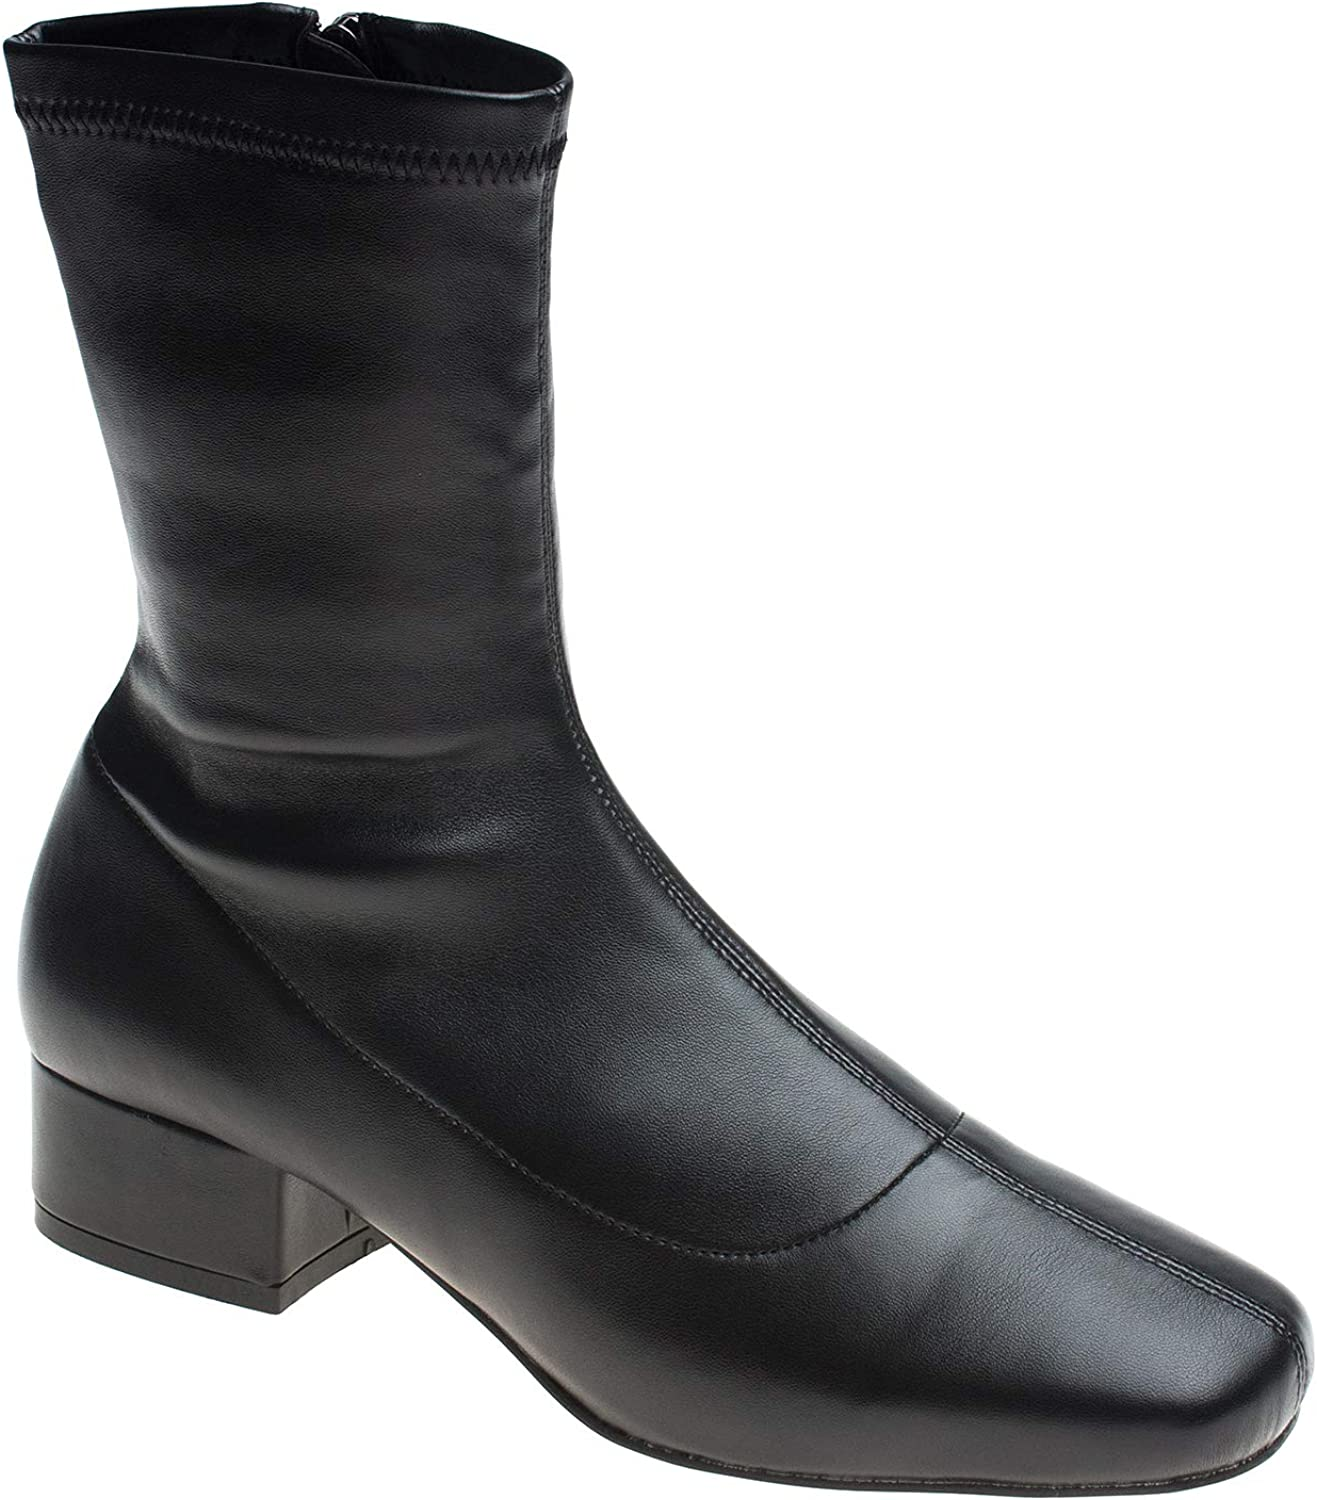 AnnaKastle Womens Stretch Shaft Ankle Bootie Low Heel Boots